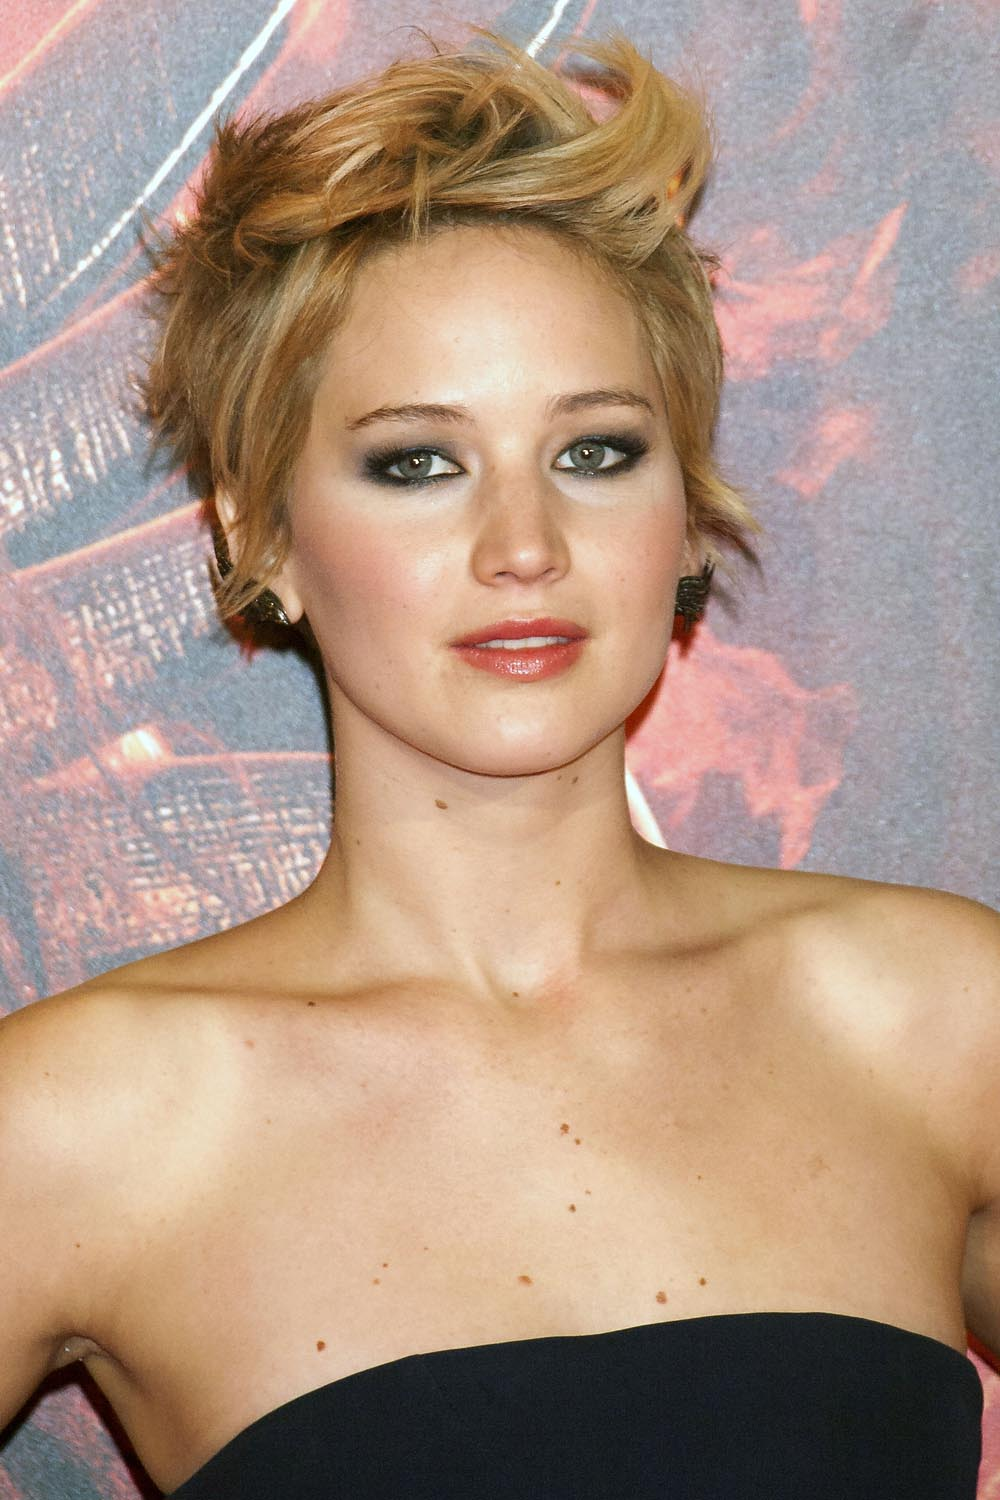 Jennifer Lawrence'den 1 model, 4 tarz